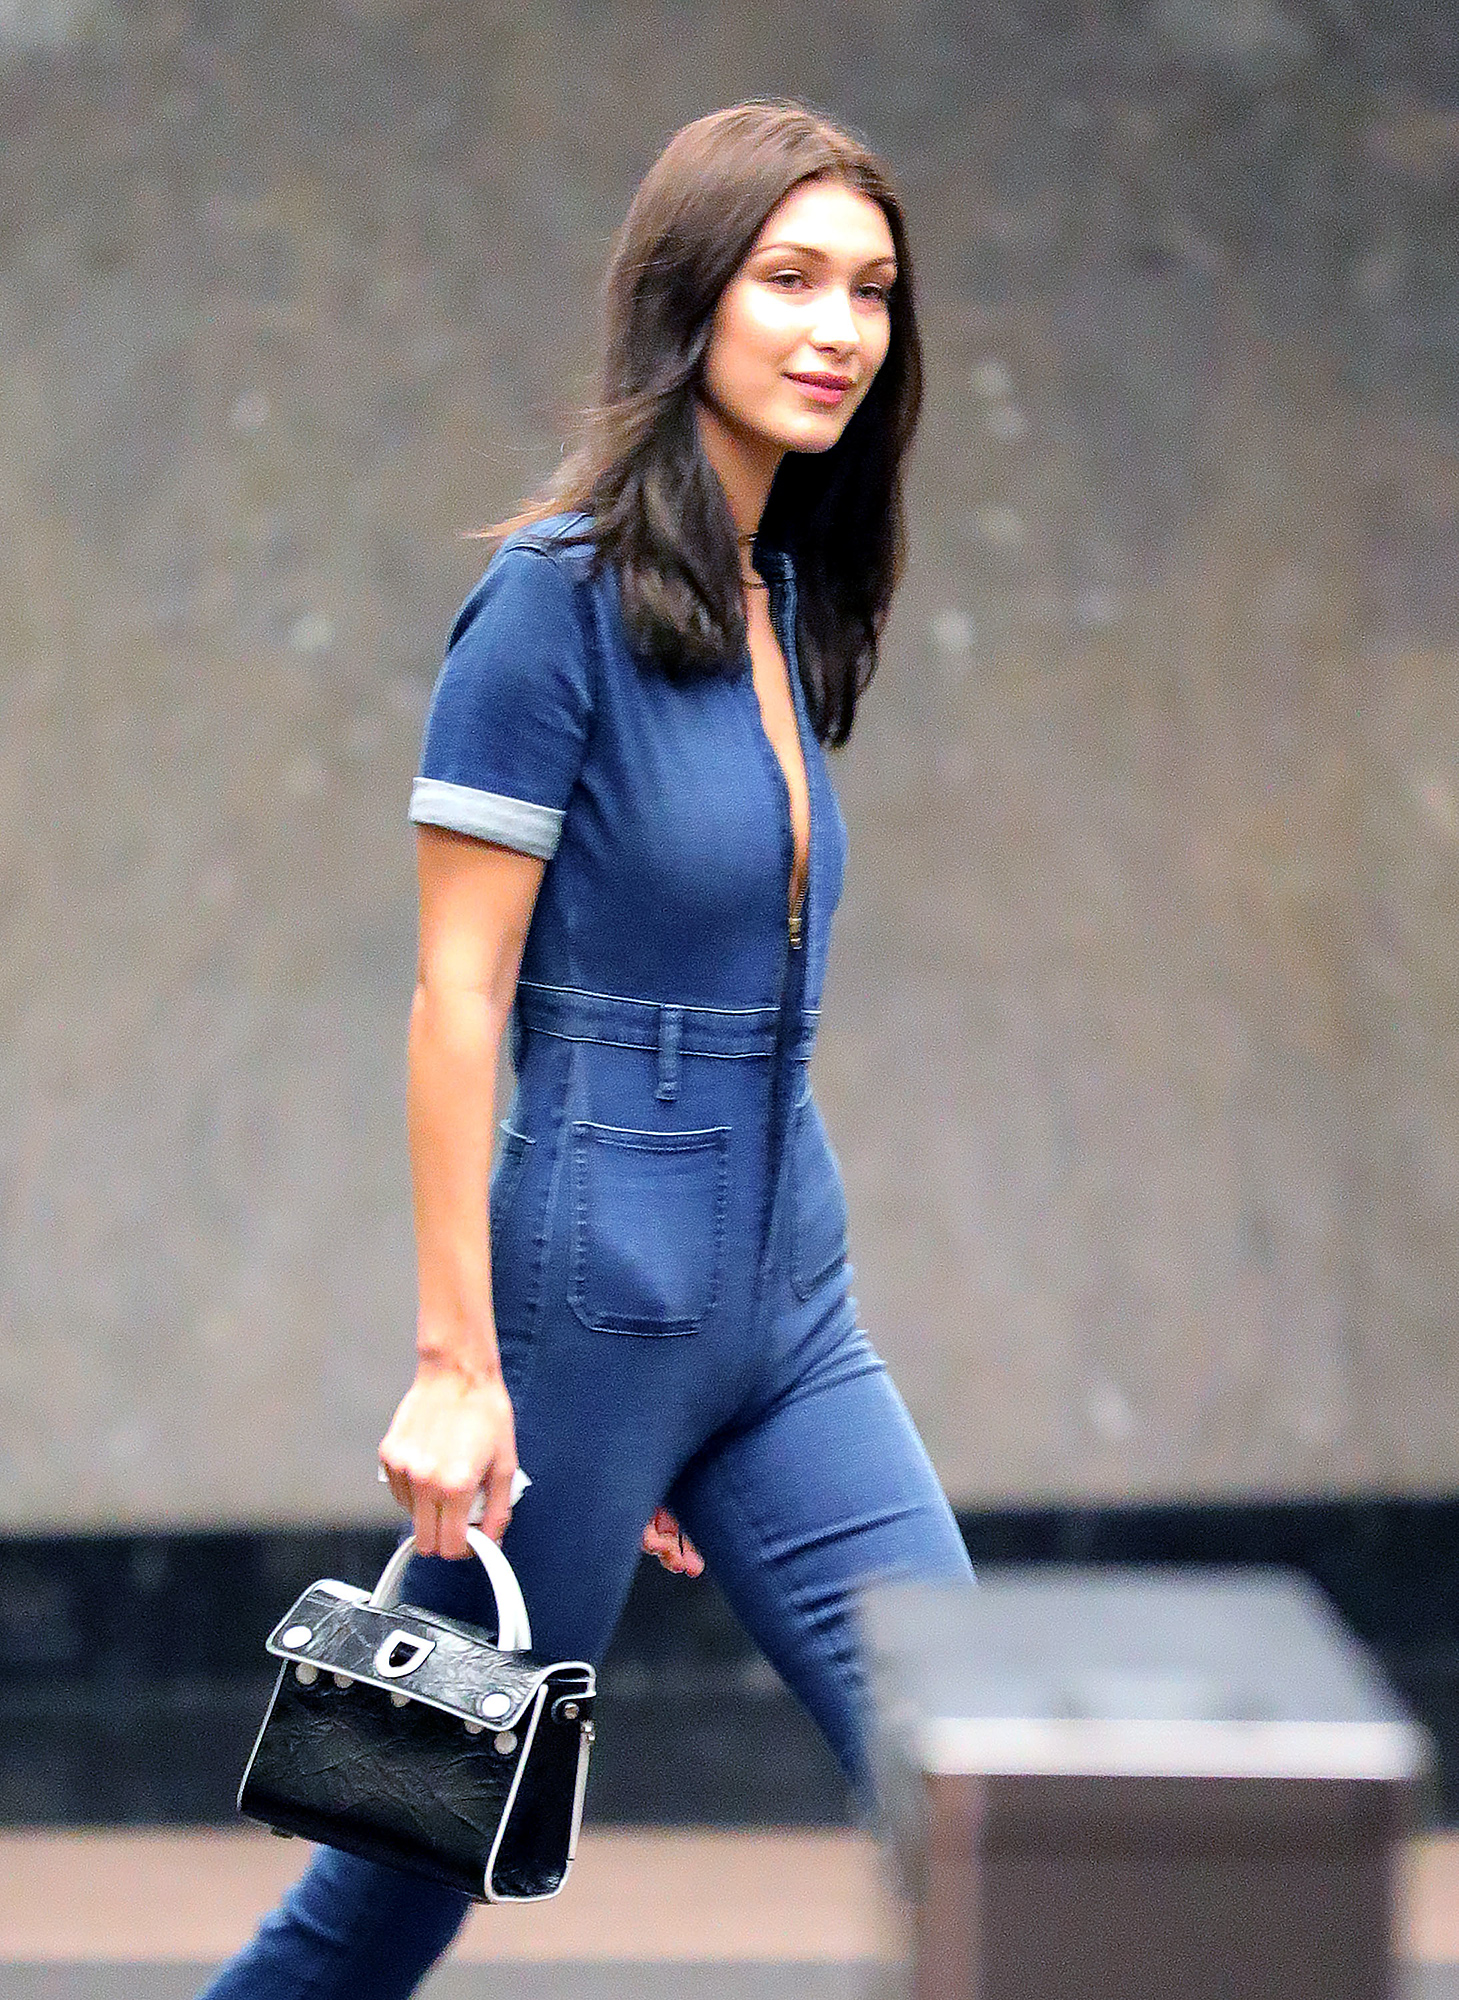 Bella Hadid wears a cleavage-bearing, body-hugging denim outfit when out and about in New York City